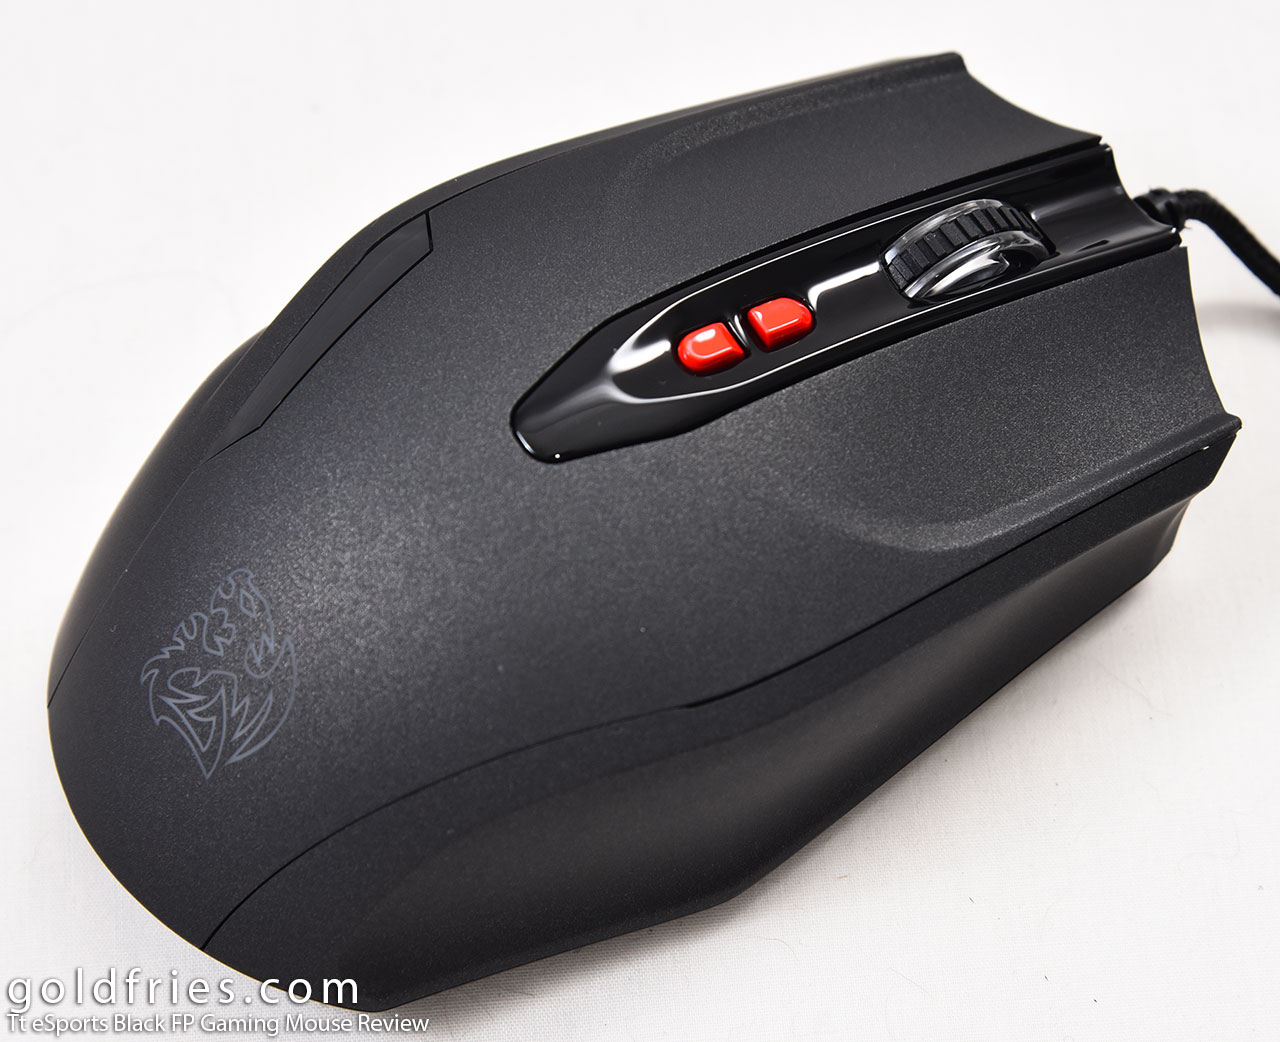 Tt eSports Black FP Gaming Mouse Review